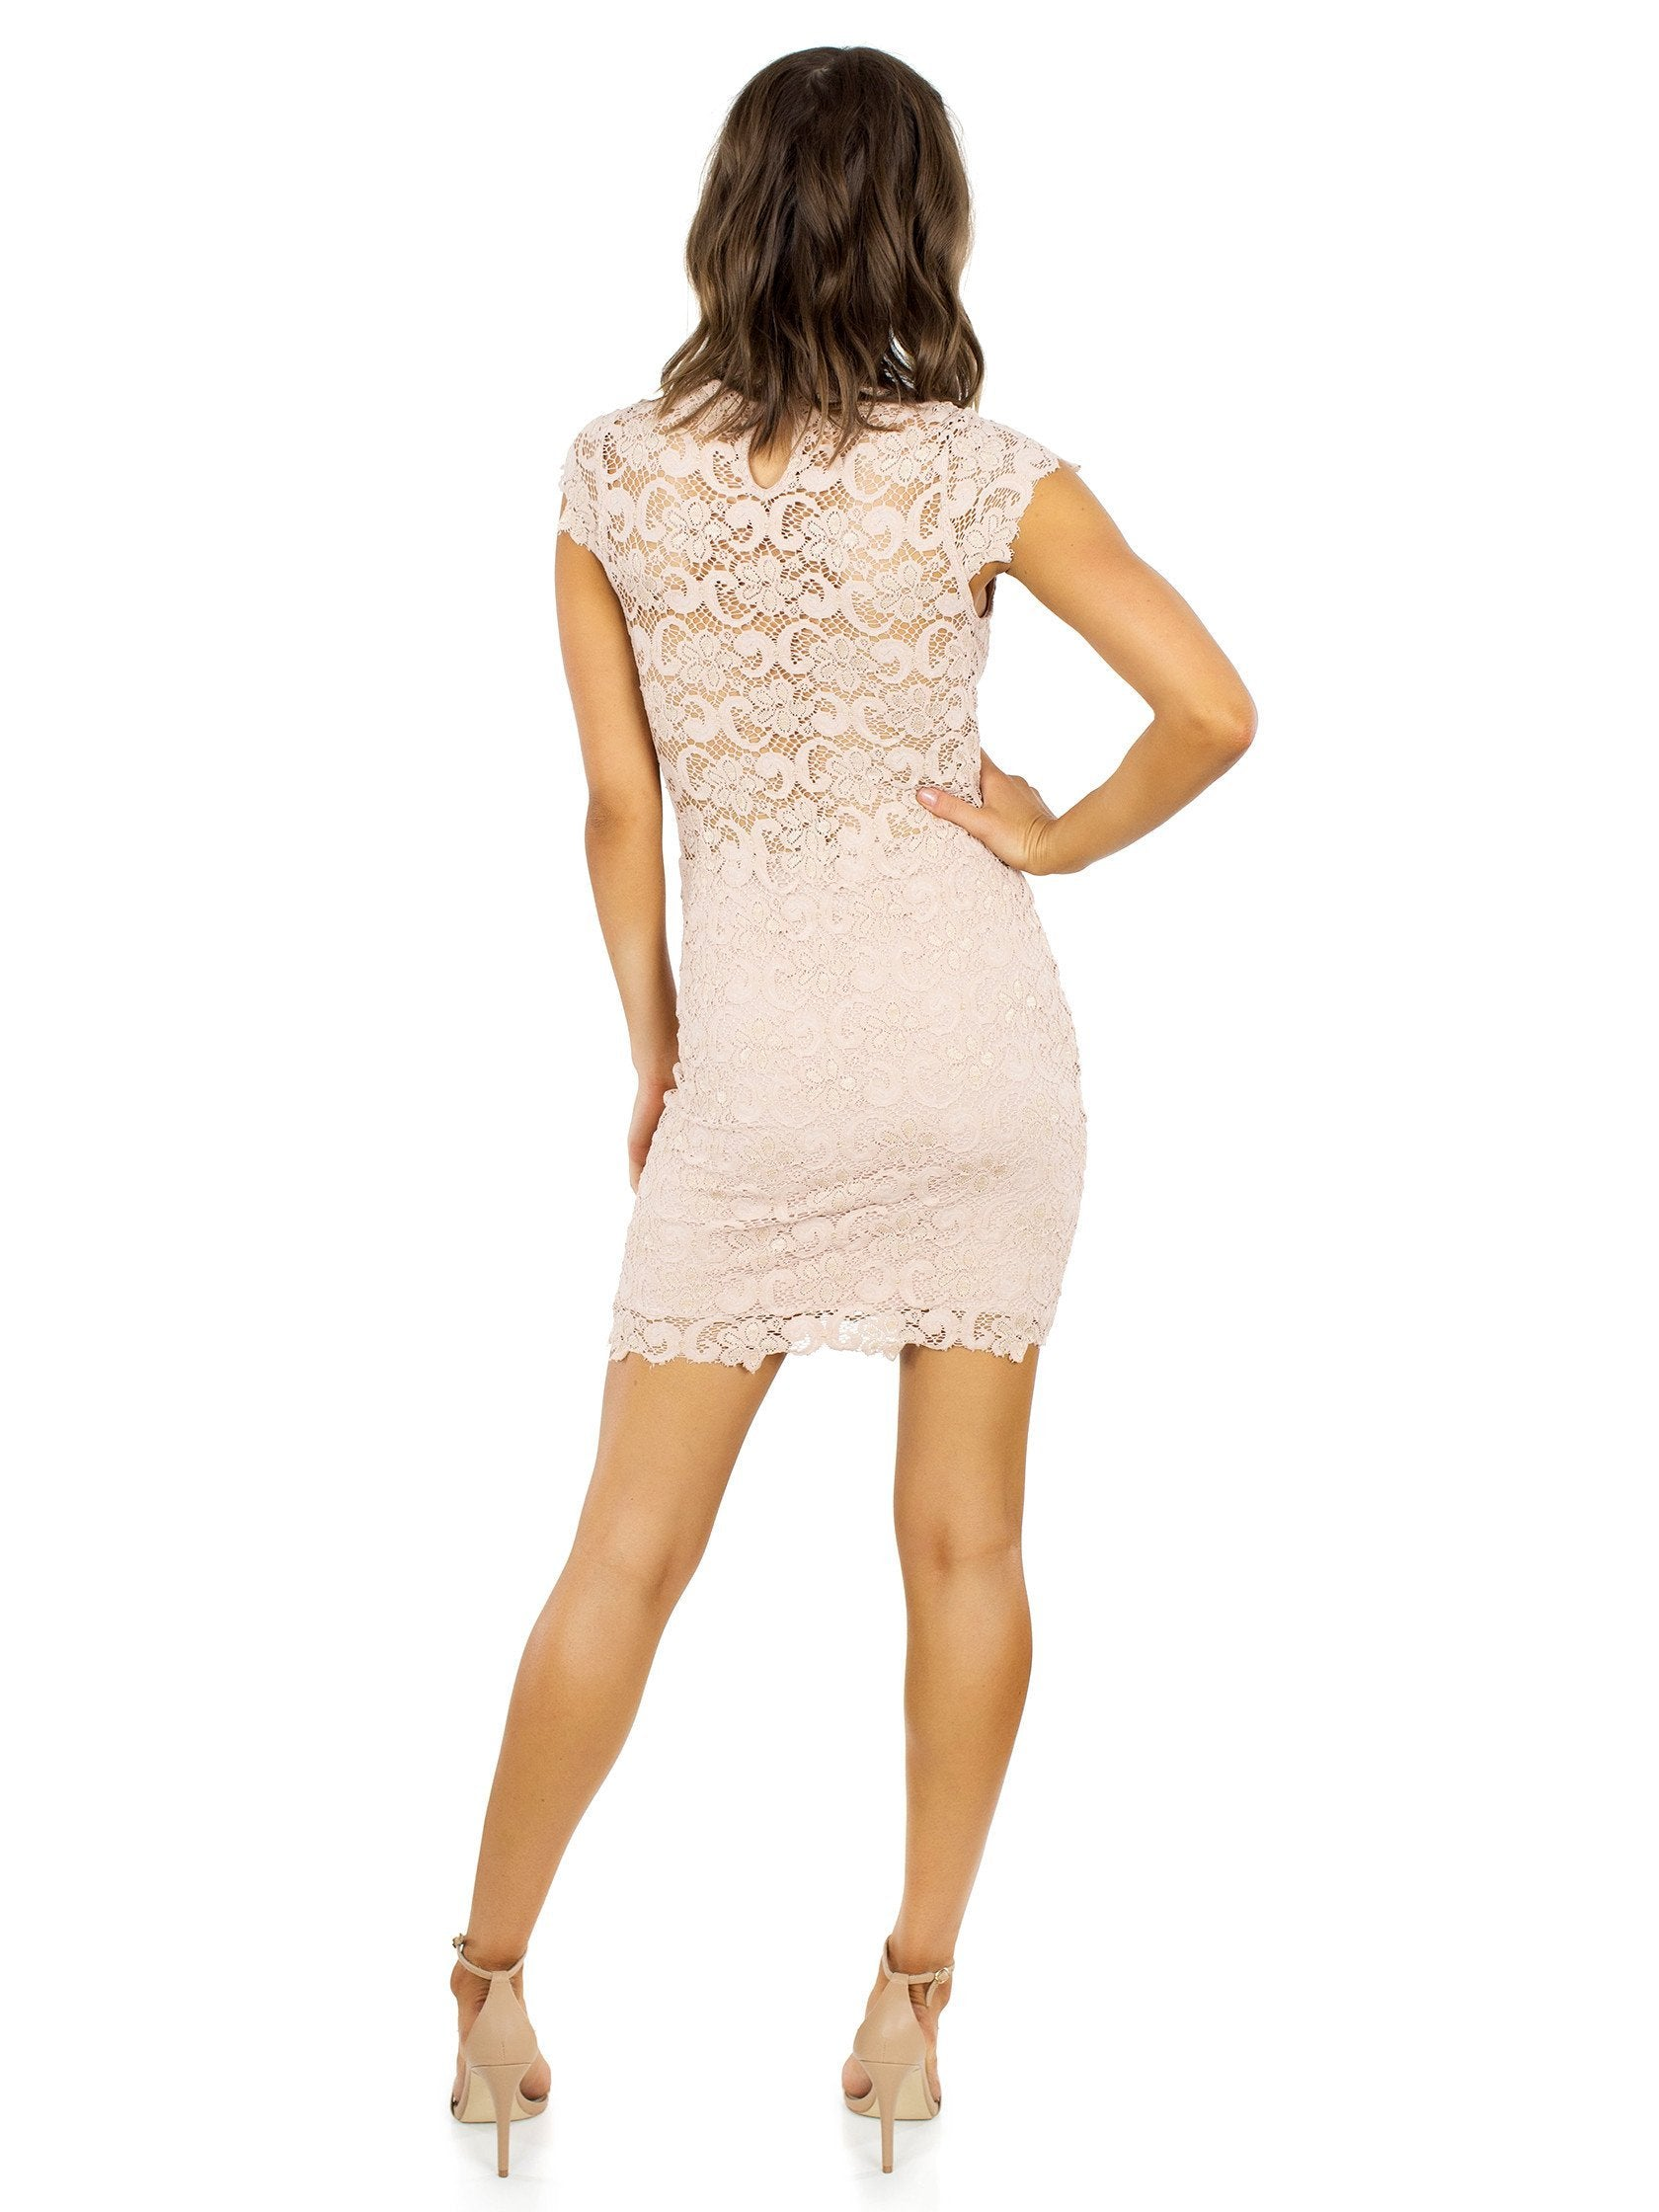 Women wearing a dress rental from Nightcap Clothing called Dixie Lace 16th District Mini Dress